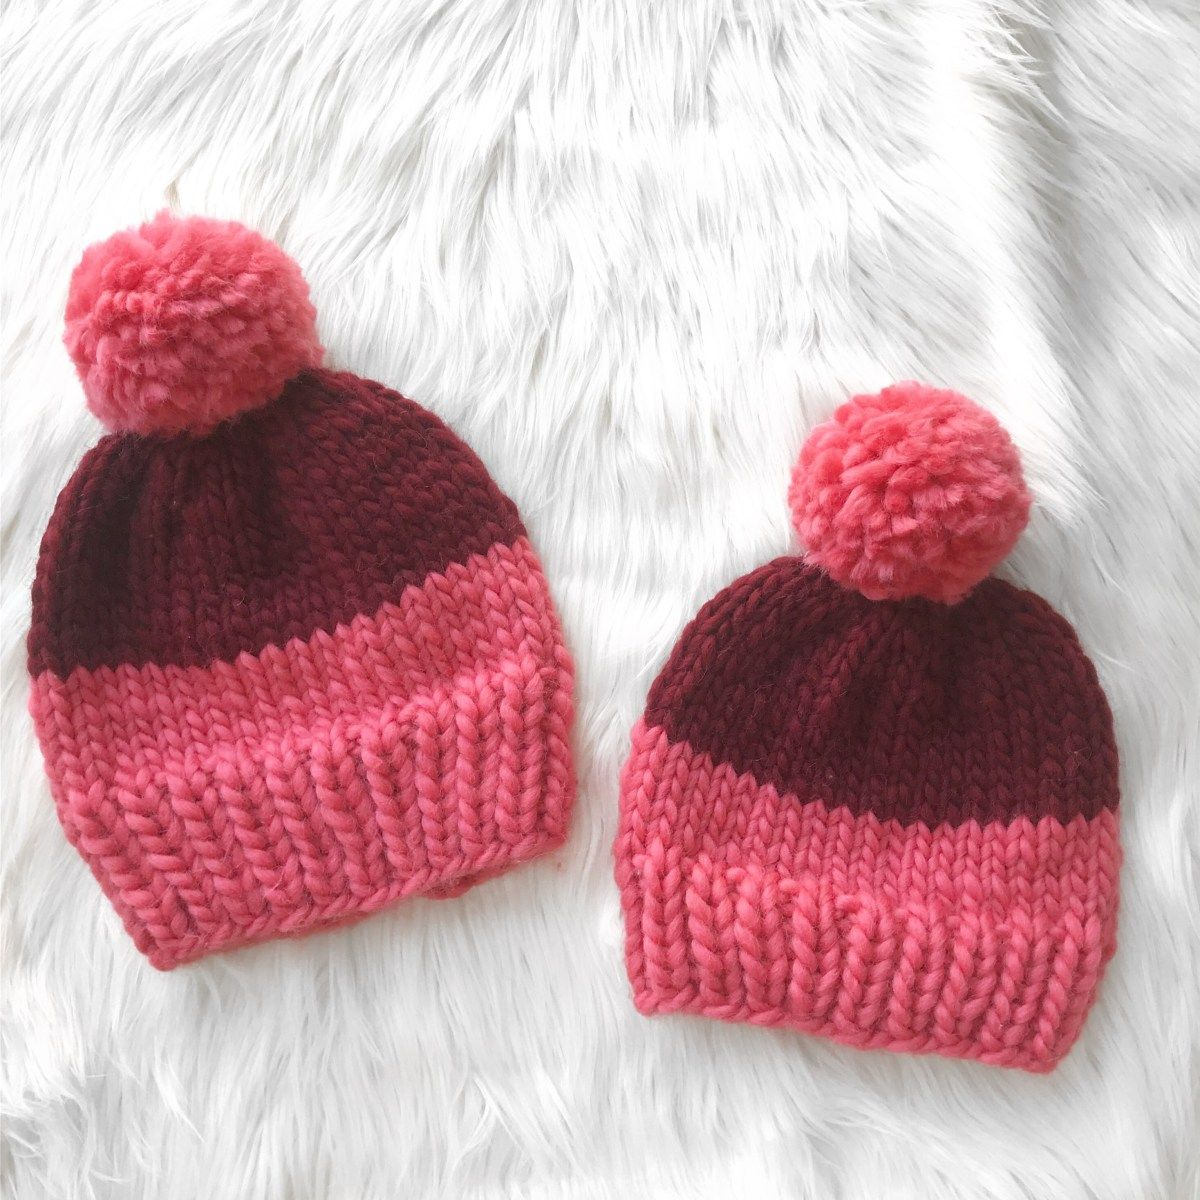 Two-Tone Chunky Beanie (With images) | Knitting patterns ...